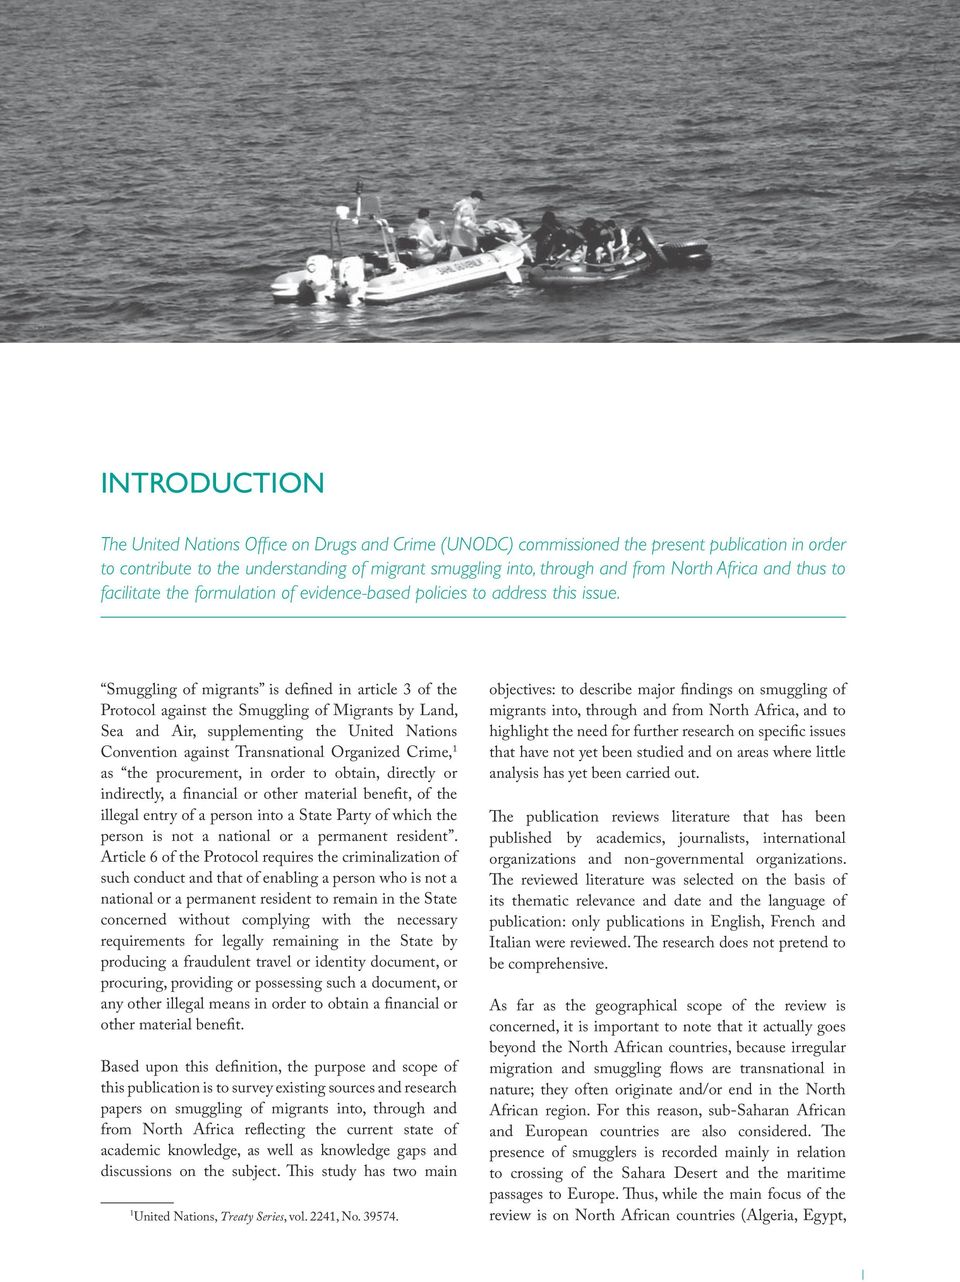 Smuggling of migrants is defined in article 3 of the Protocol against the Smuggling of Migrants by Land, Sea and Air, supplementing the United Nations Convention against Transnational Organized